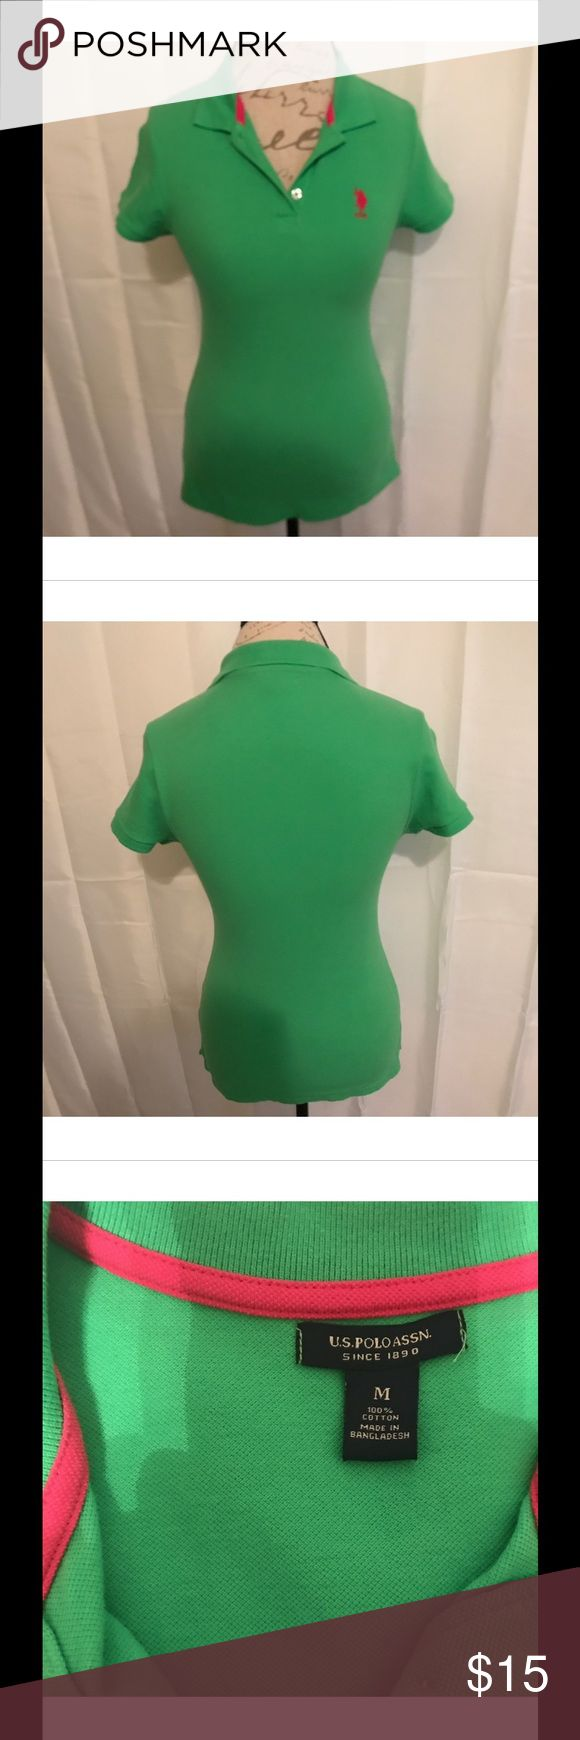 ✳️US POLO ASSN GREEN POLO SHIRT SIZE M✳️ US Polo Assn women's size M polo shirt - brand new condition - washed once but never worn U.S. Polo Assn. Tops